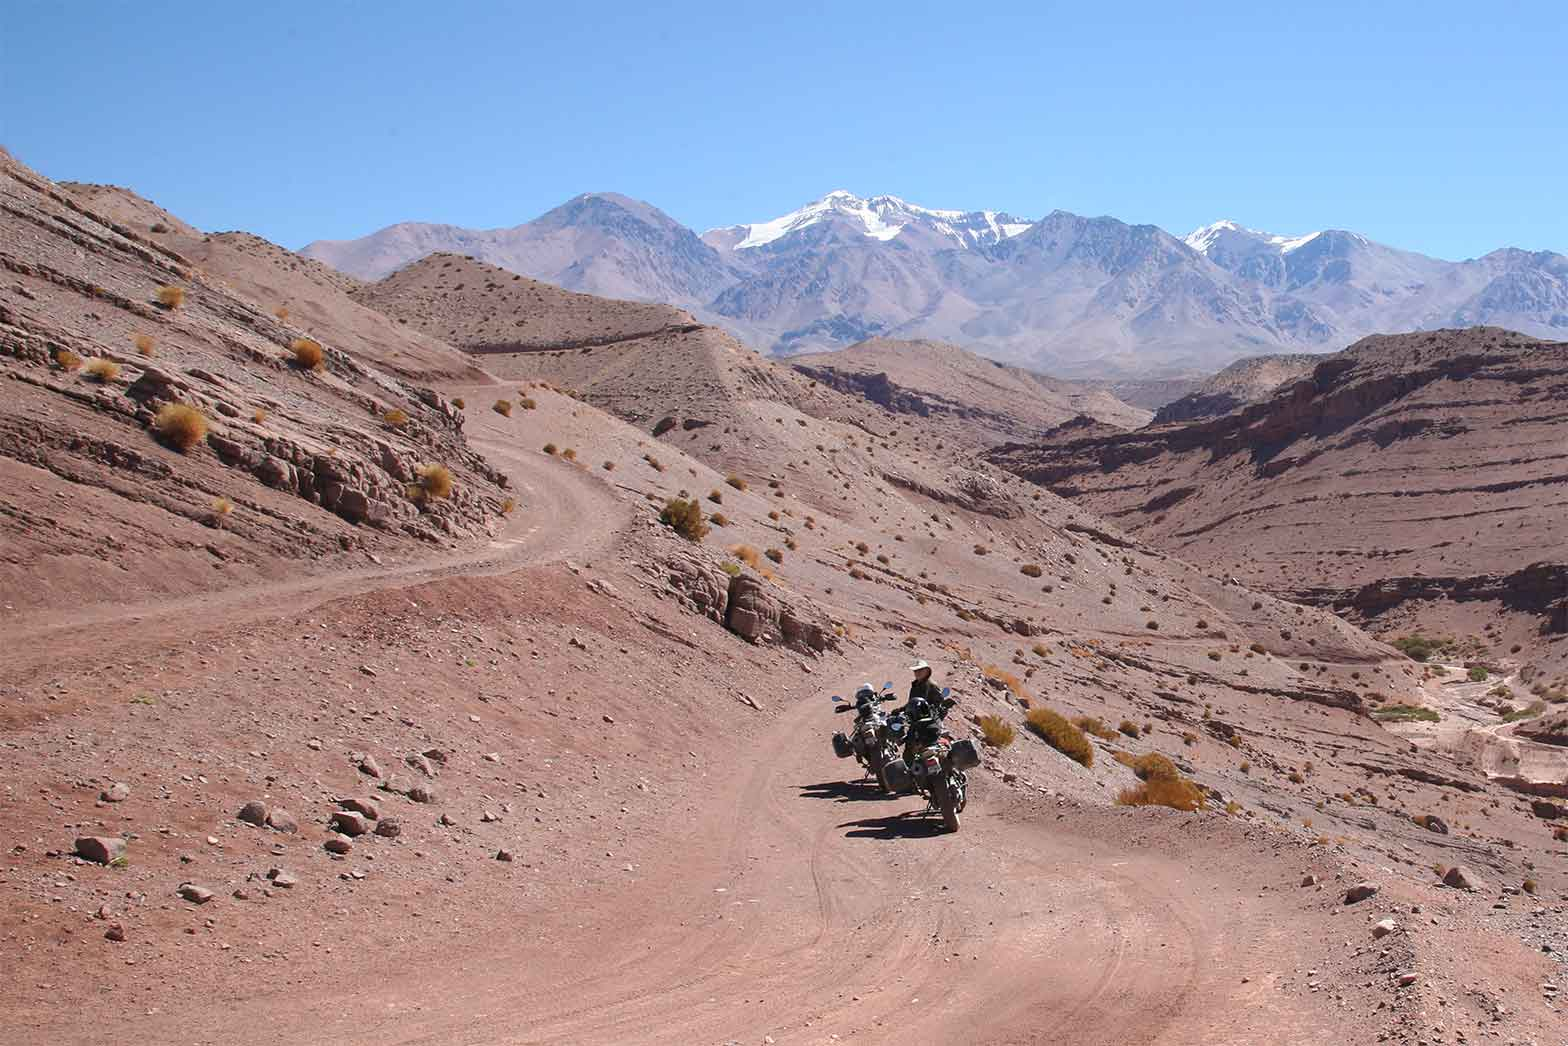 Los Andes Misteriosos Motorcycle Tour In South America